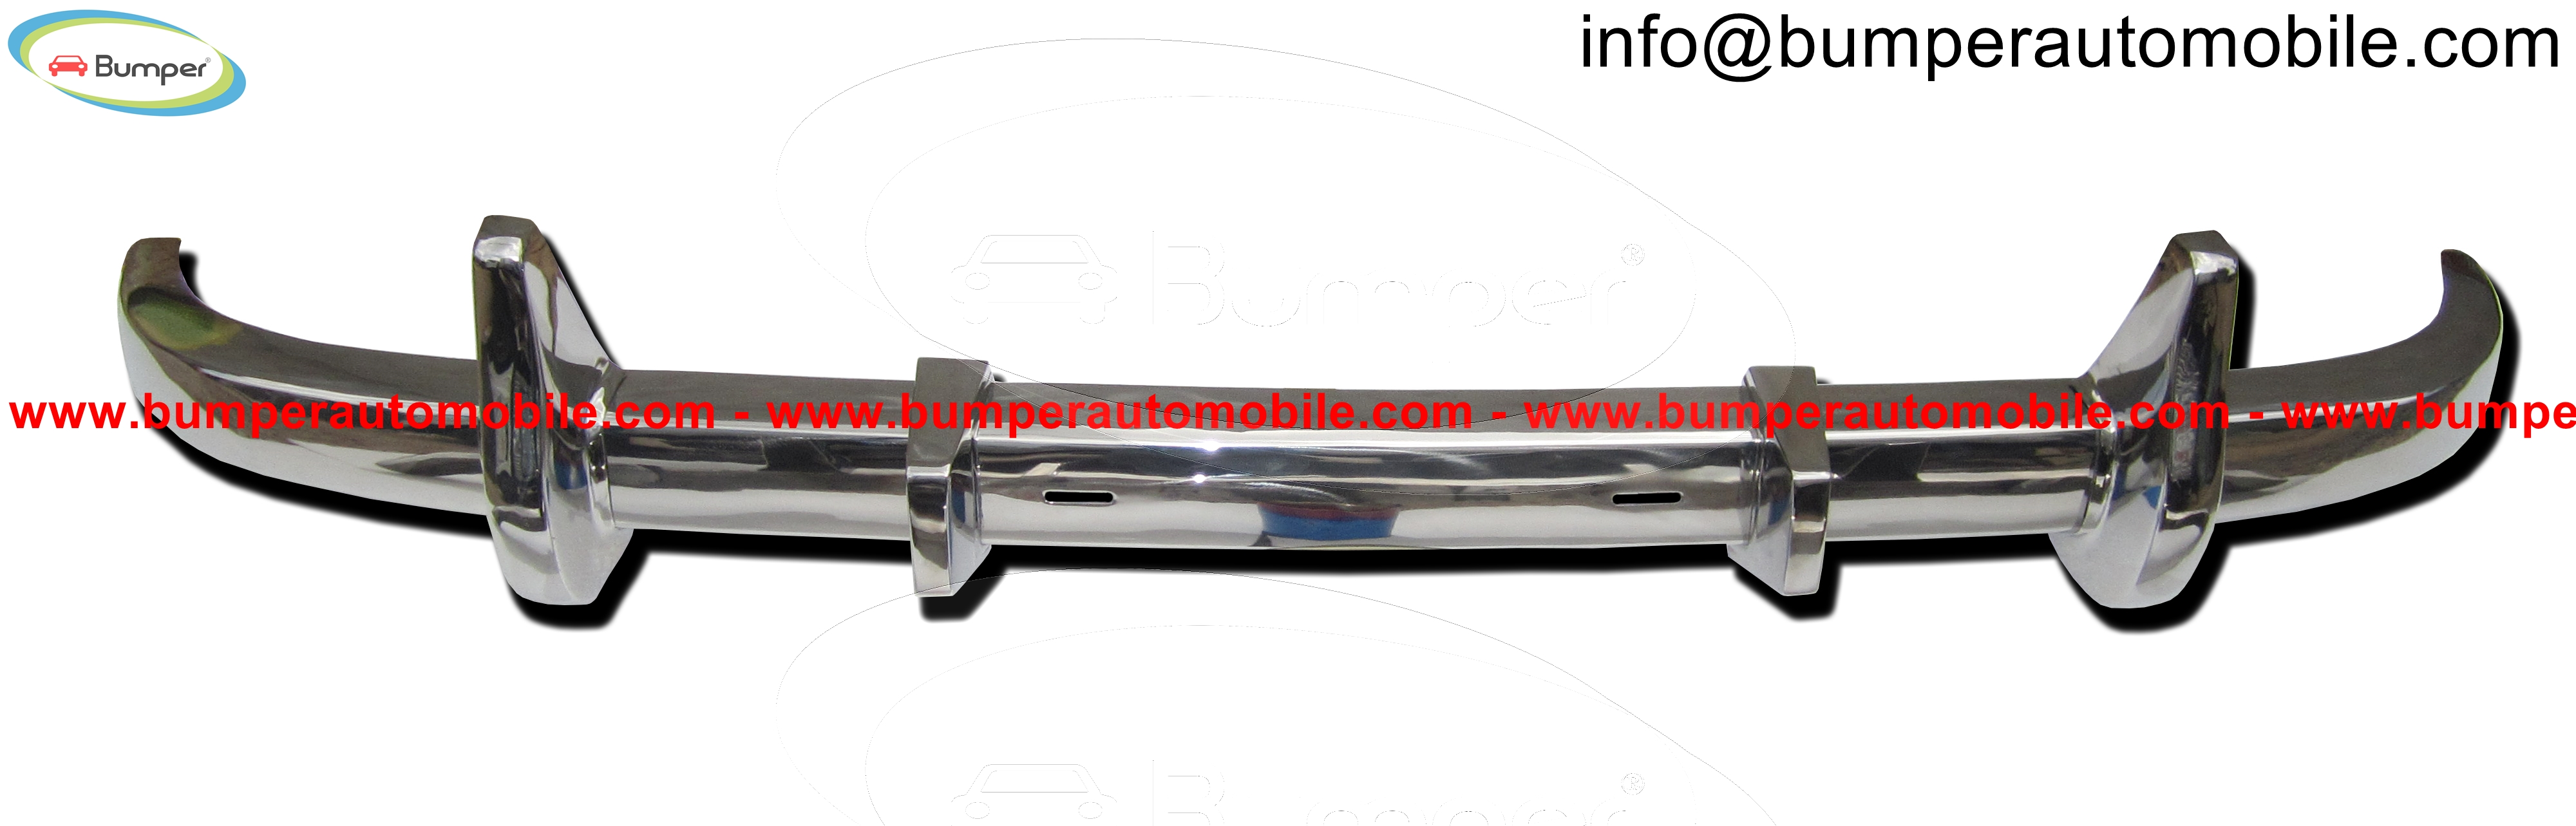 Rear bumper Mercedes W136 W191 170 models (1946-1955).